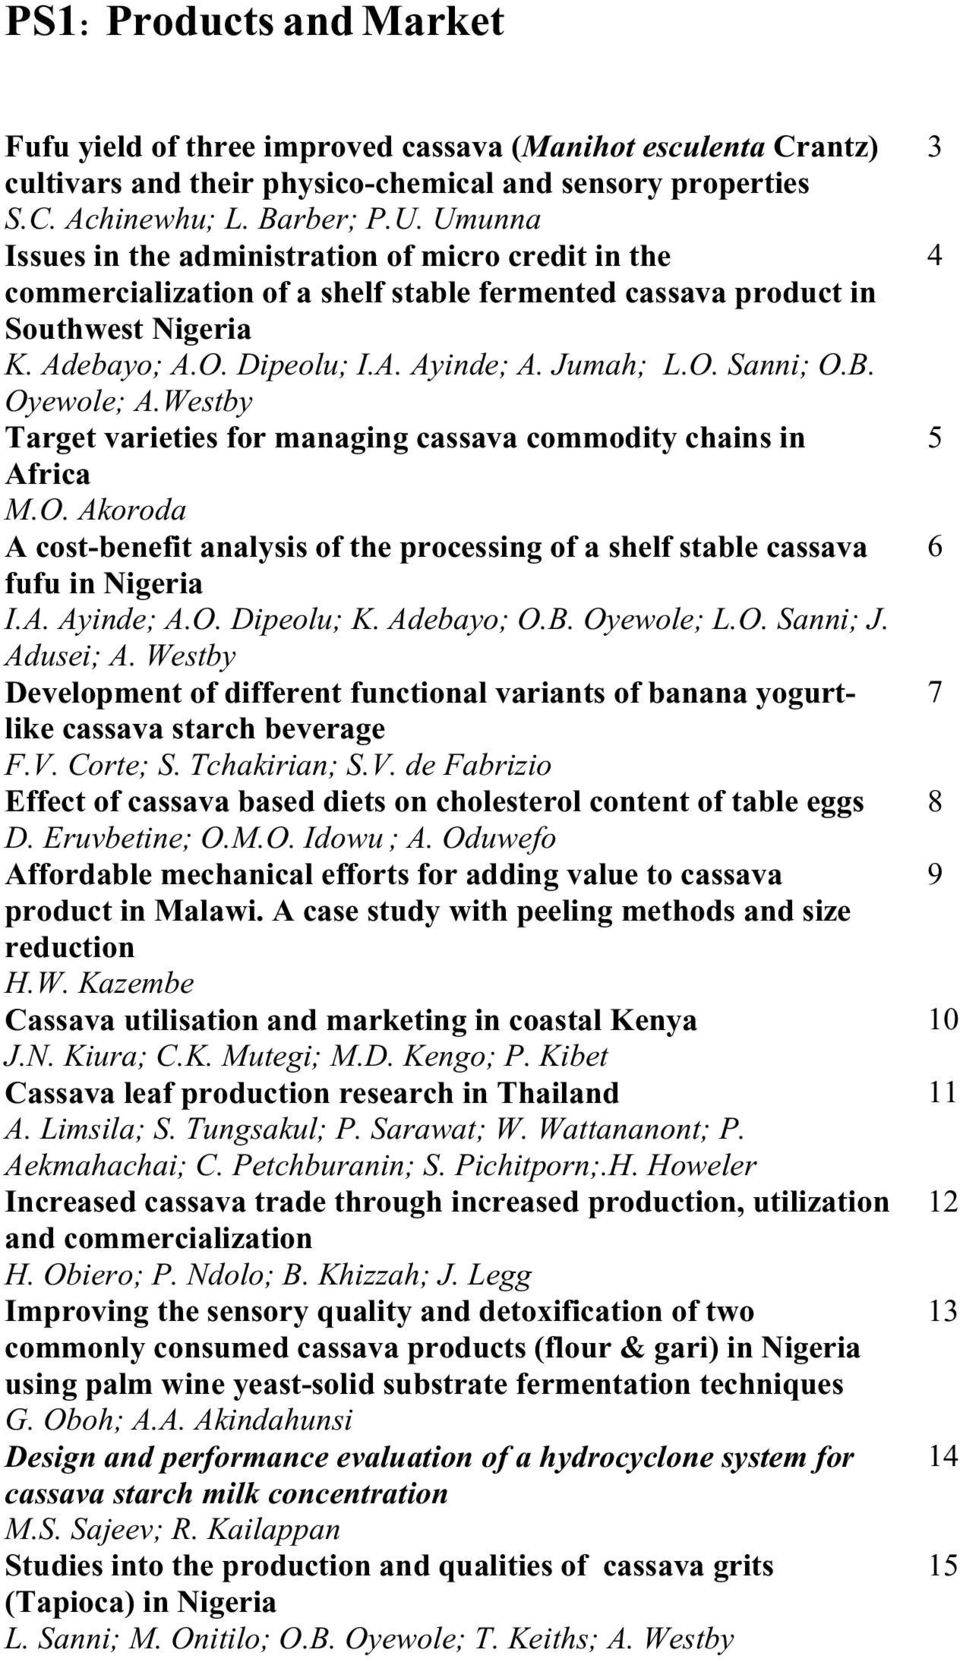 B. Oyewole; A.Westby Target varieties for managing cassava commodity chains in Africa M.O. Akoroda A cost-benefit analysis of the processing of a shelf stable cassava fufu in Nigeria I.A. Ayinde; A.O. Dipeolu; K.